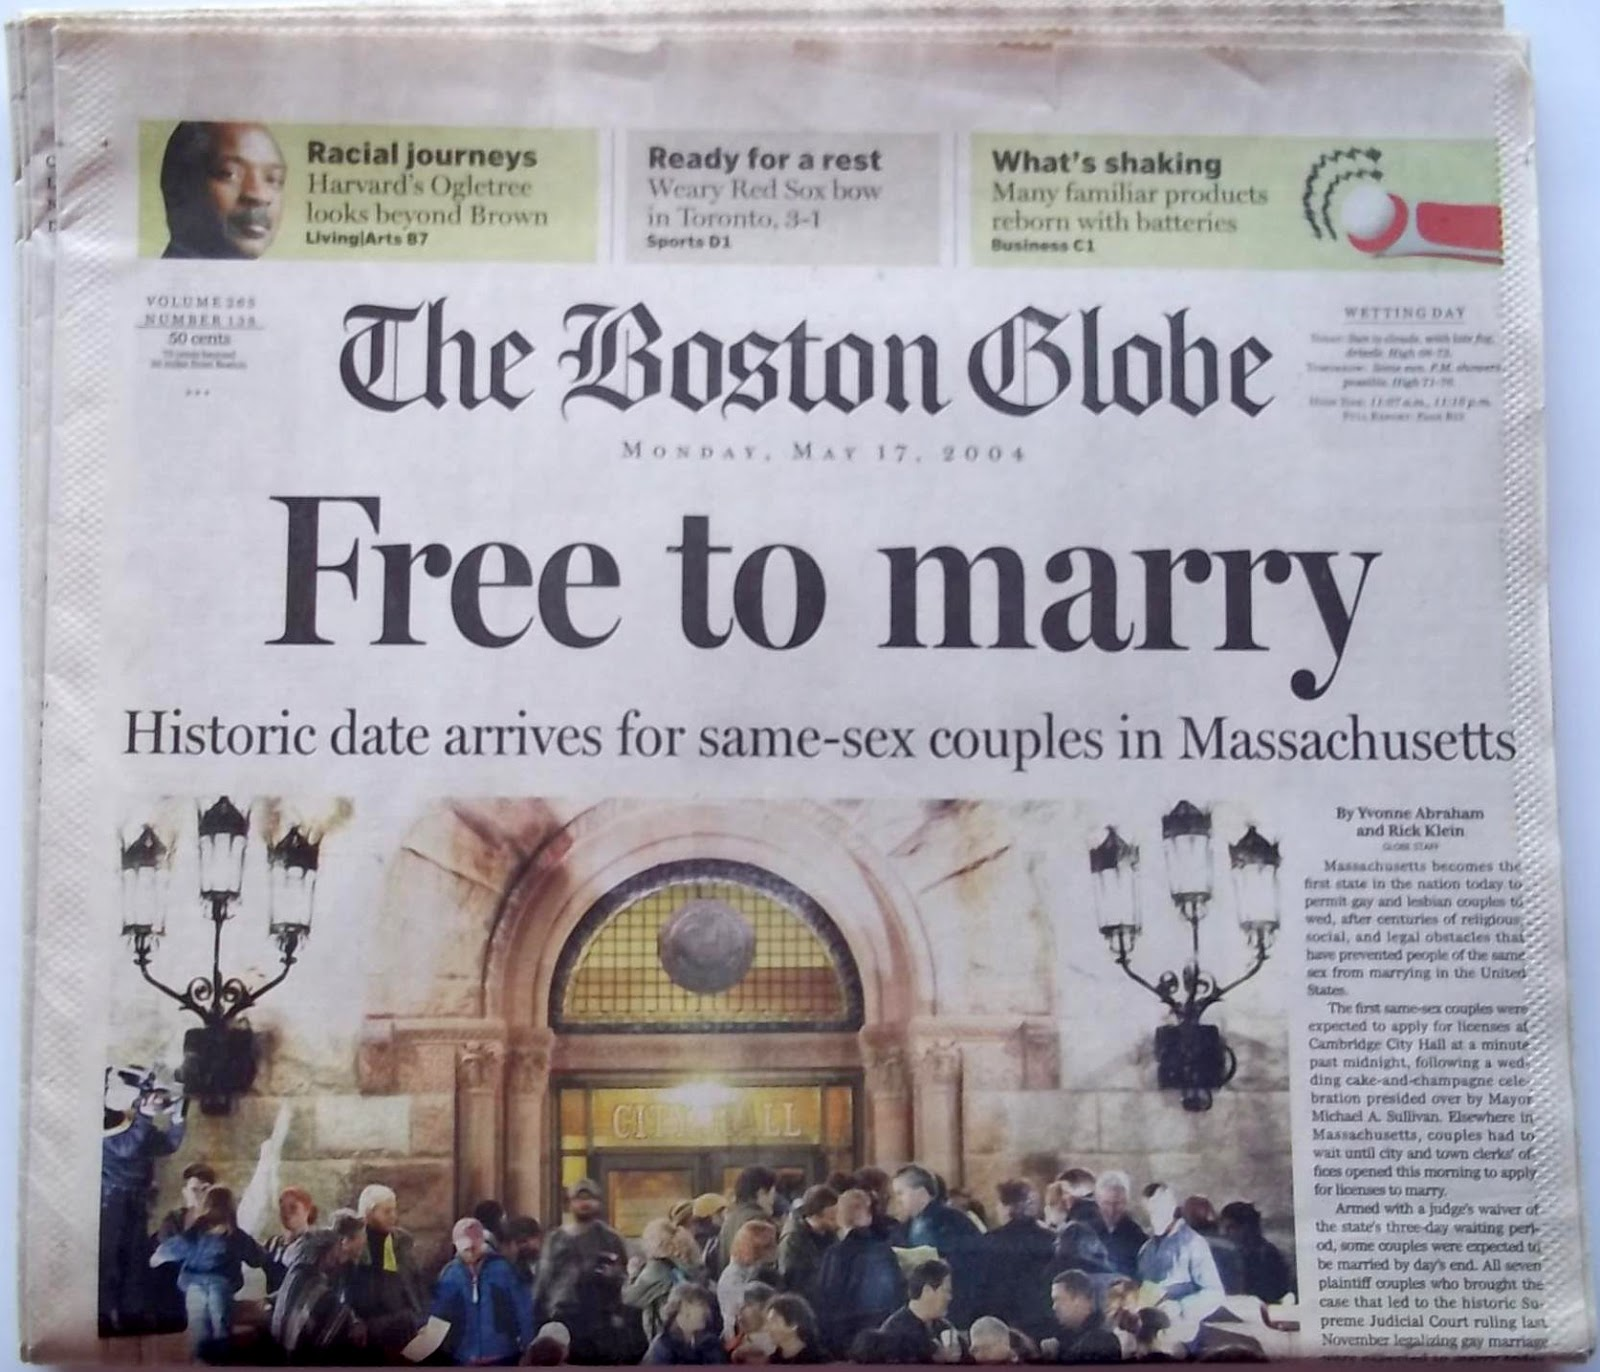 time capsule to my teenaged self seeing god naked so instead back east on 17 2004 massachusetts became the first state to legalize gay marriage